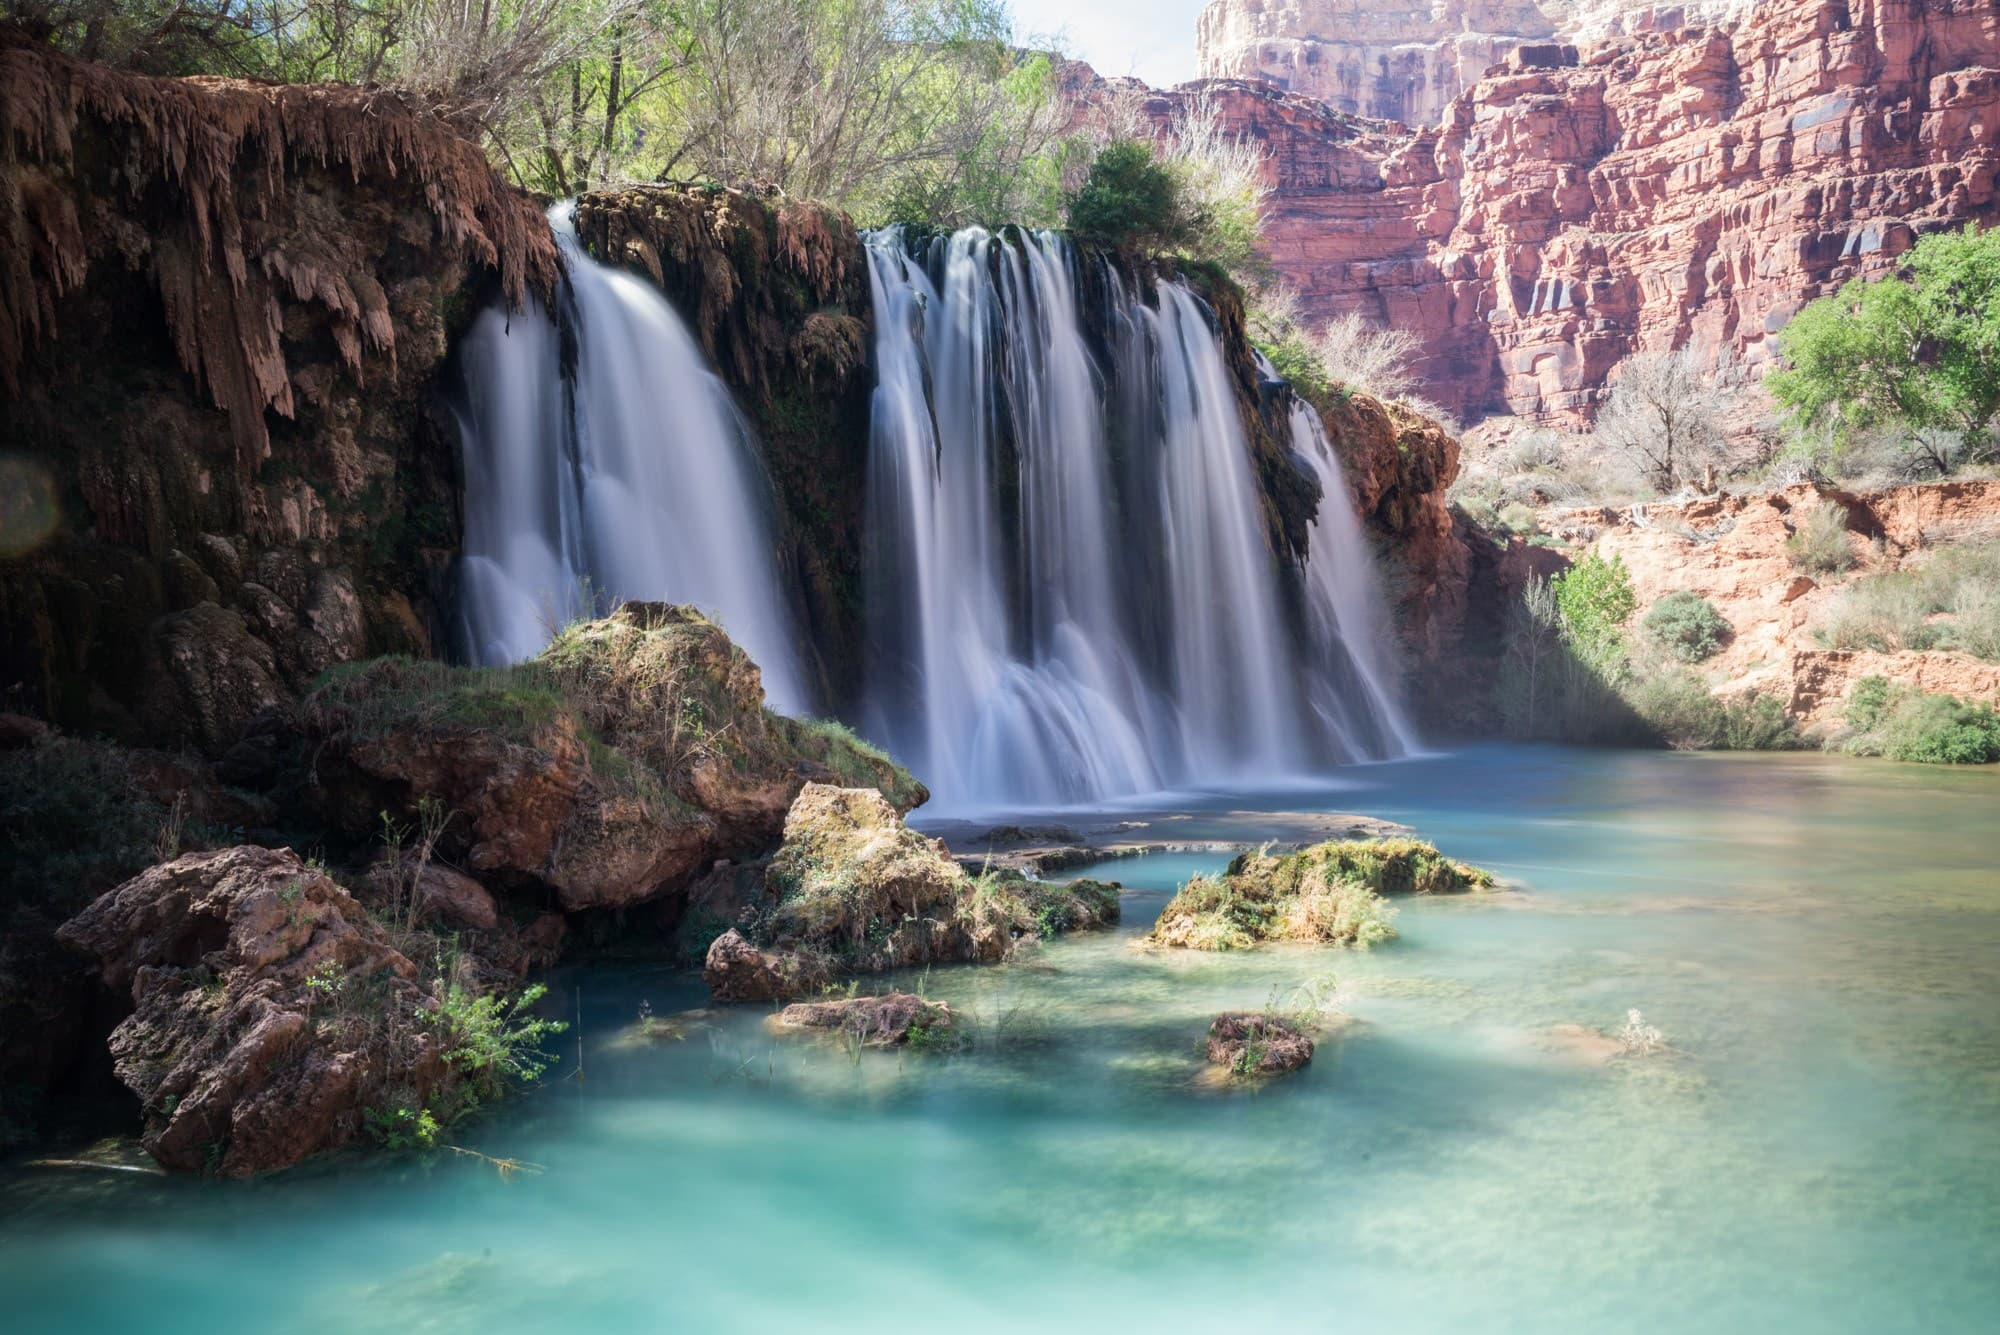 The 5 Amazing Waterfalls of Havasu Canyon